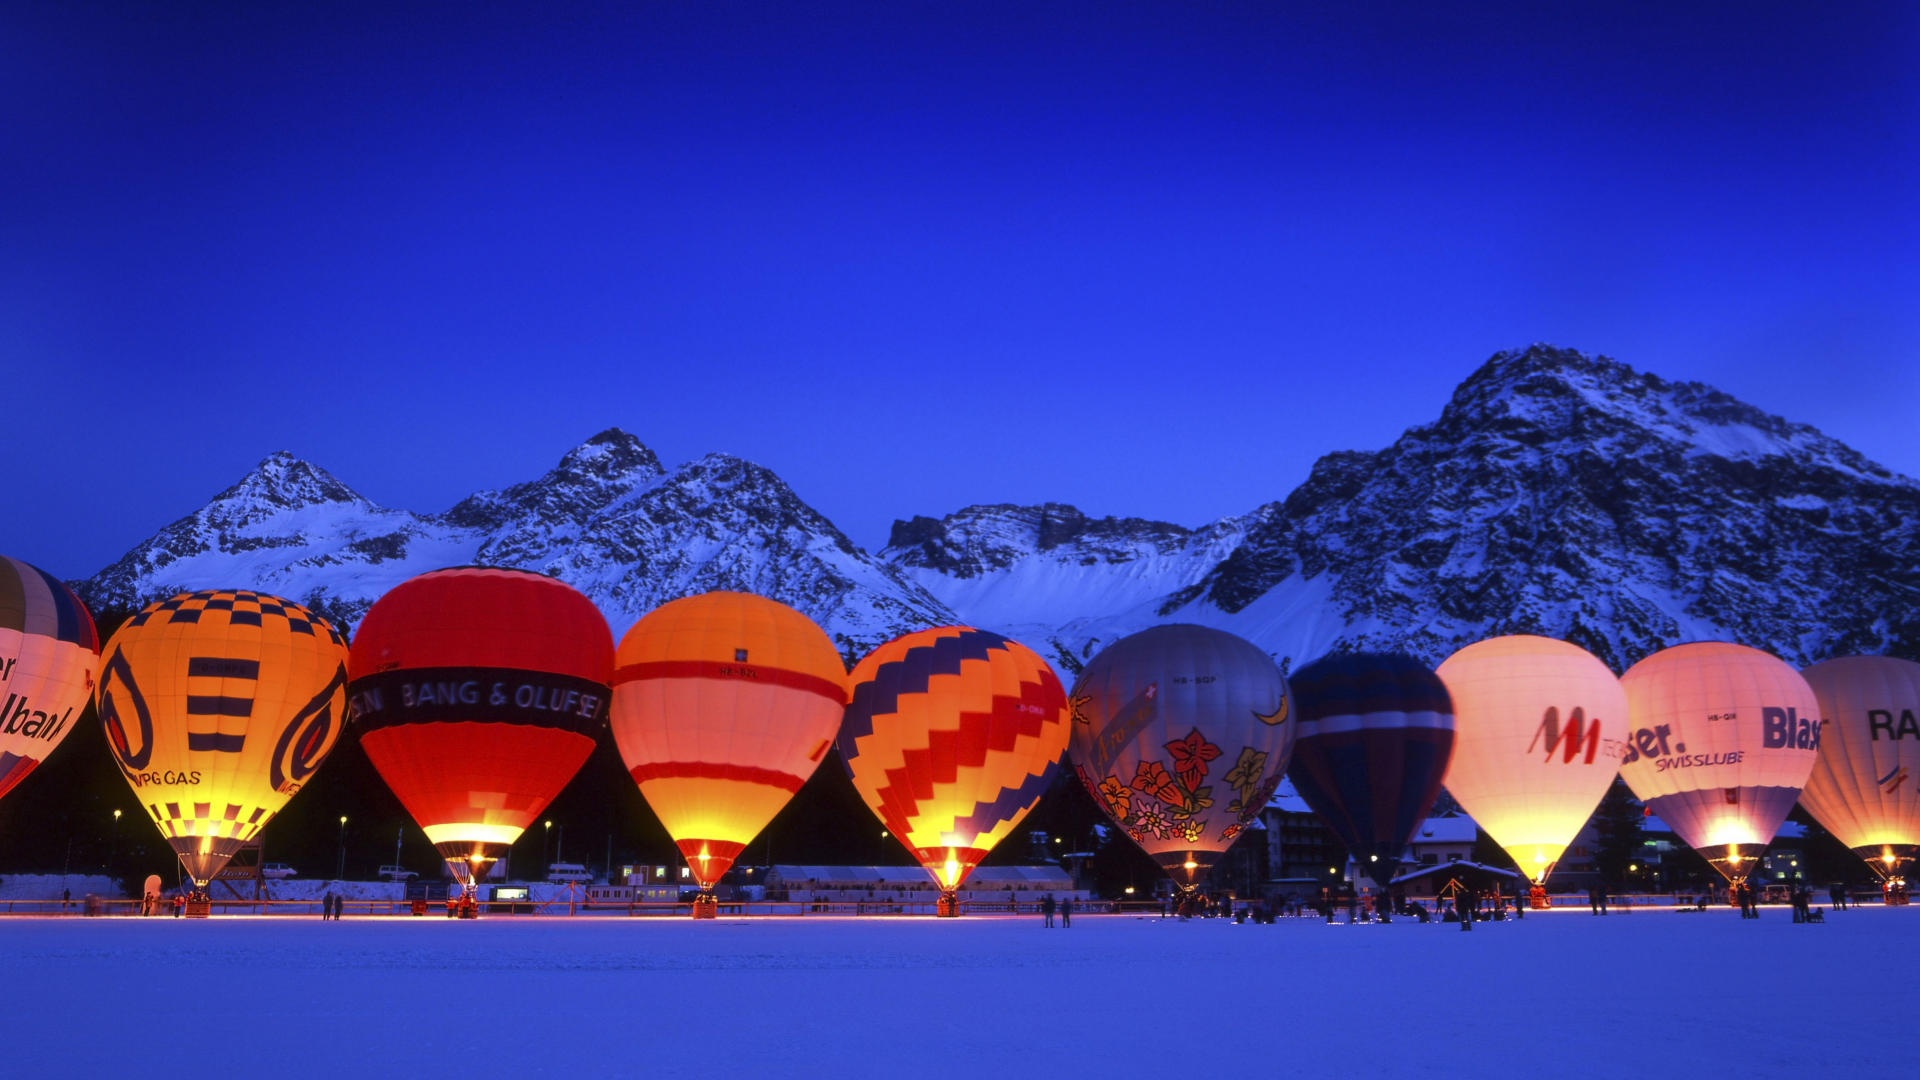 #39634110 Hot Air Balloon Wallpaper for PC, Mobile